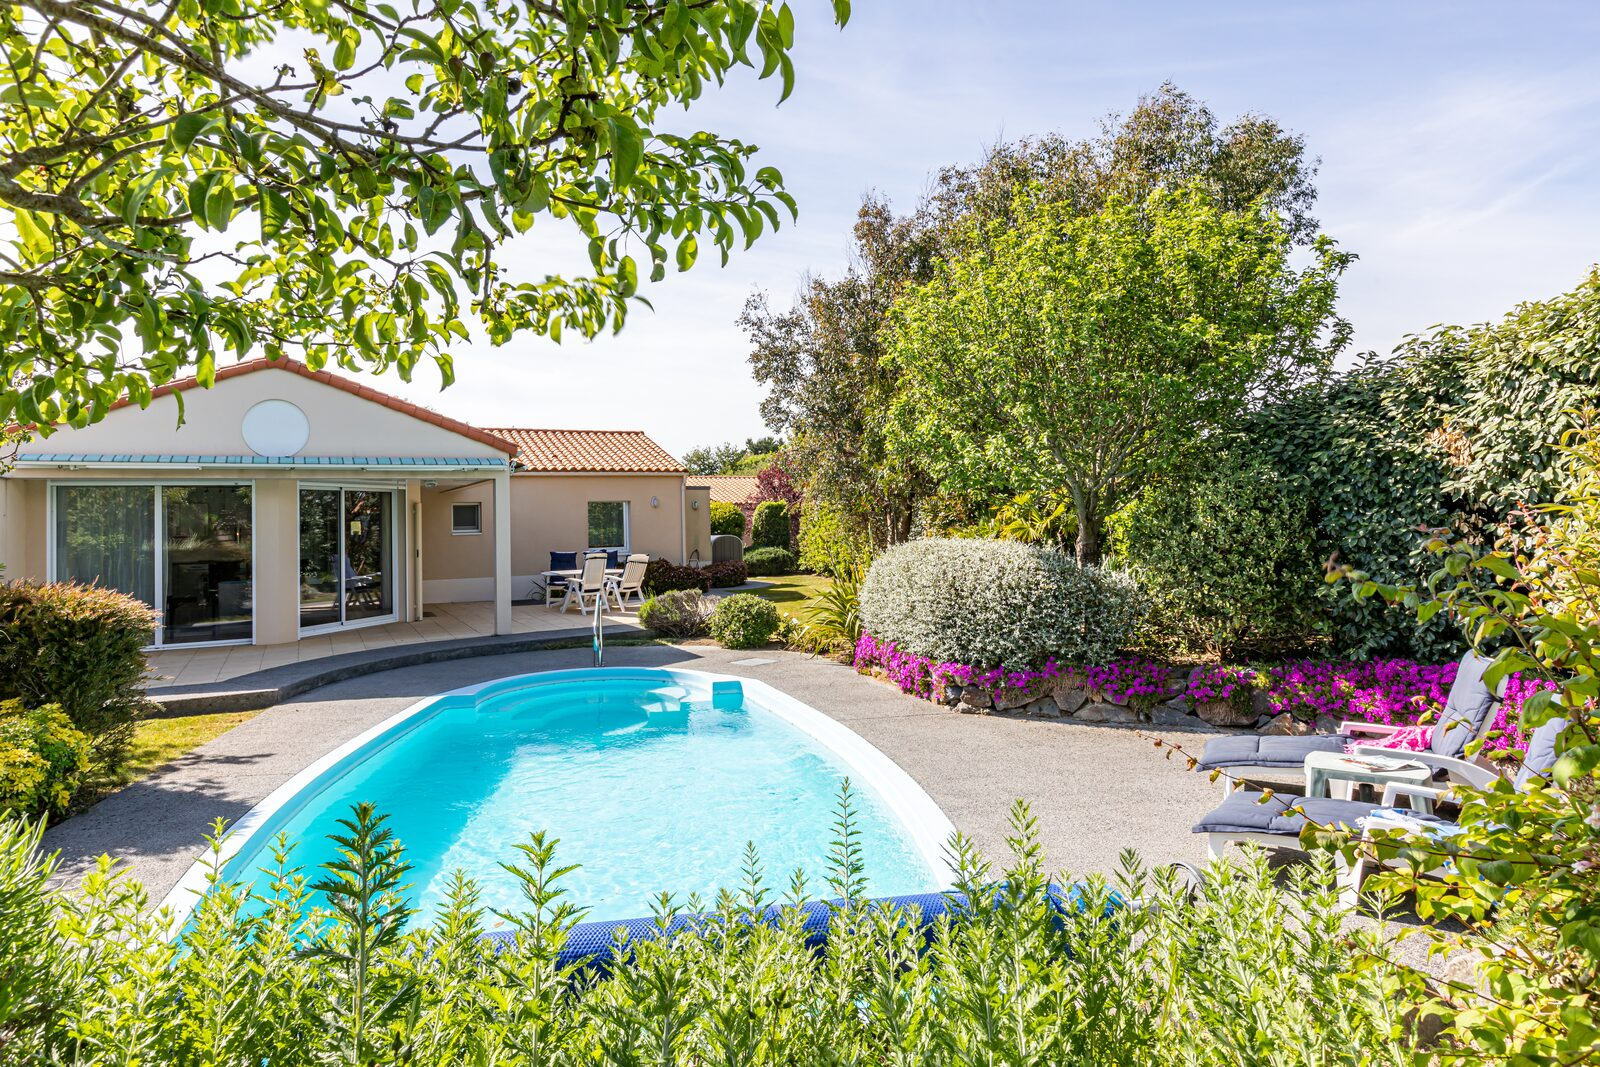 Oasis Les Jardins des Sables d'Olonne | Villa's in the Vendee